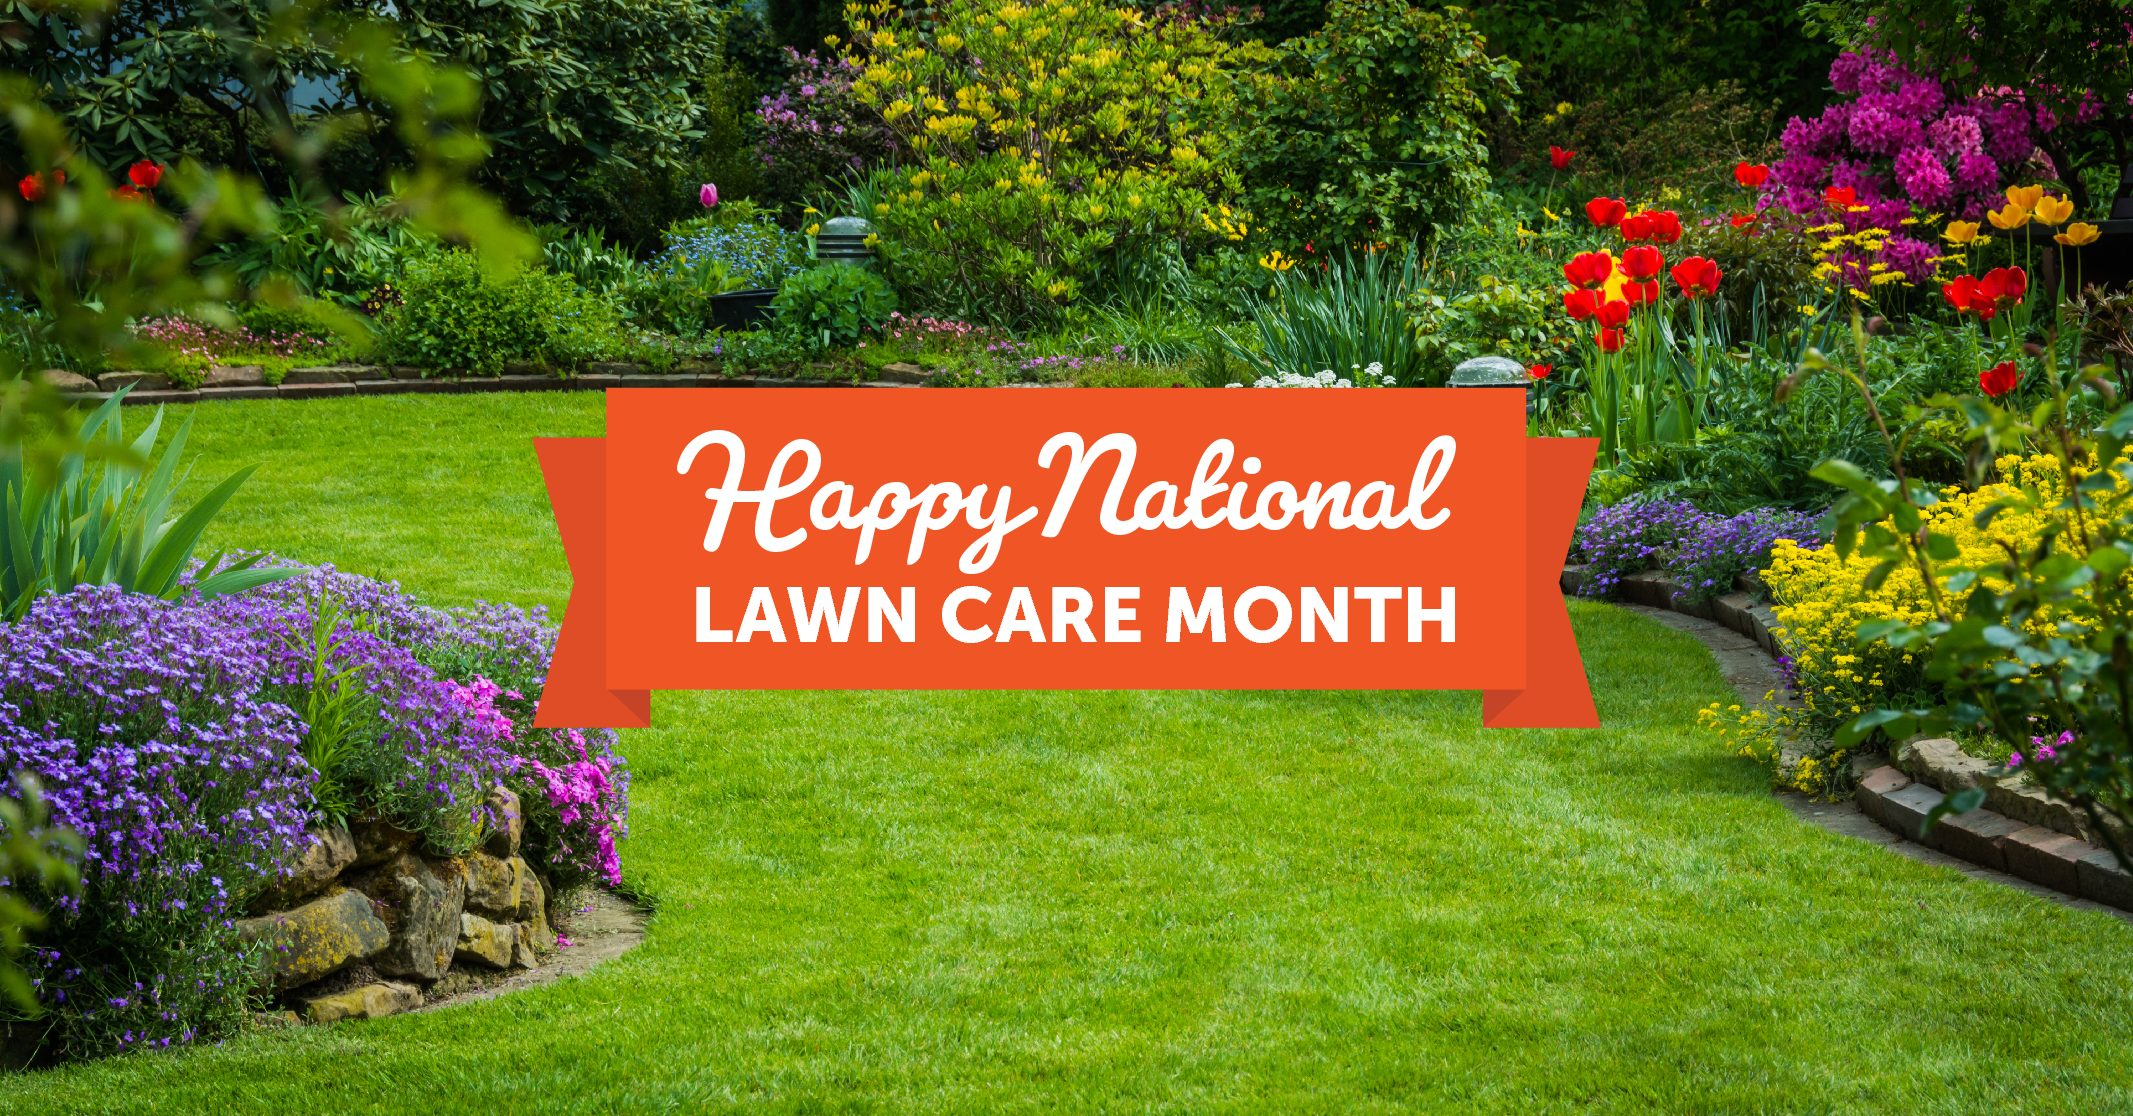 Happy National Lawn Care Month to Central Indiana Homeowners